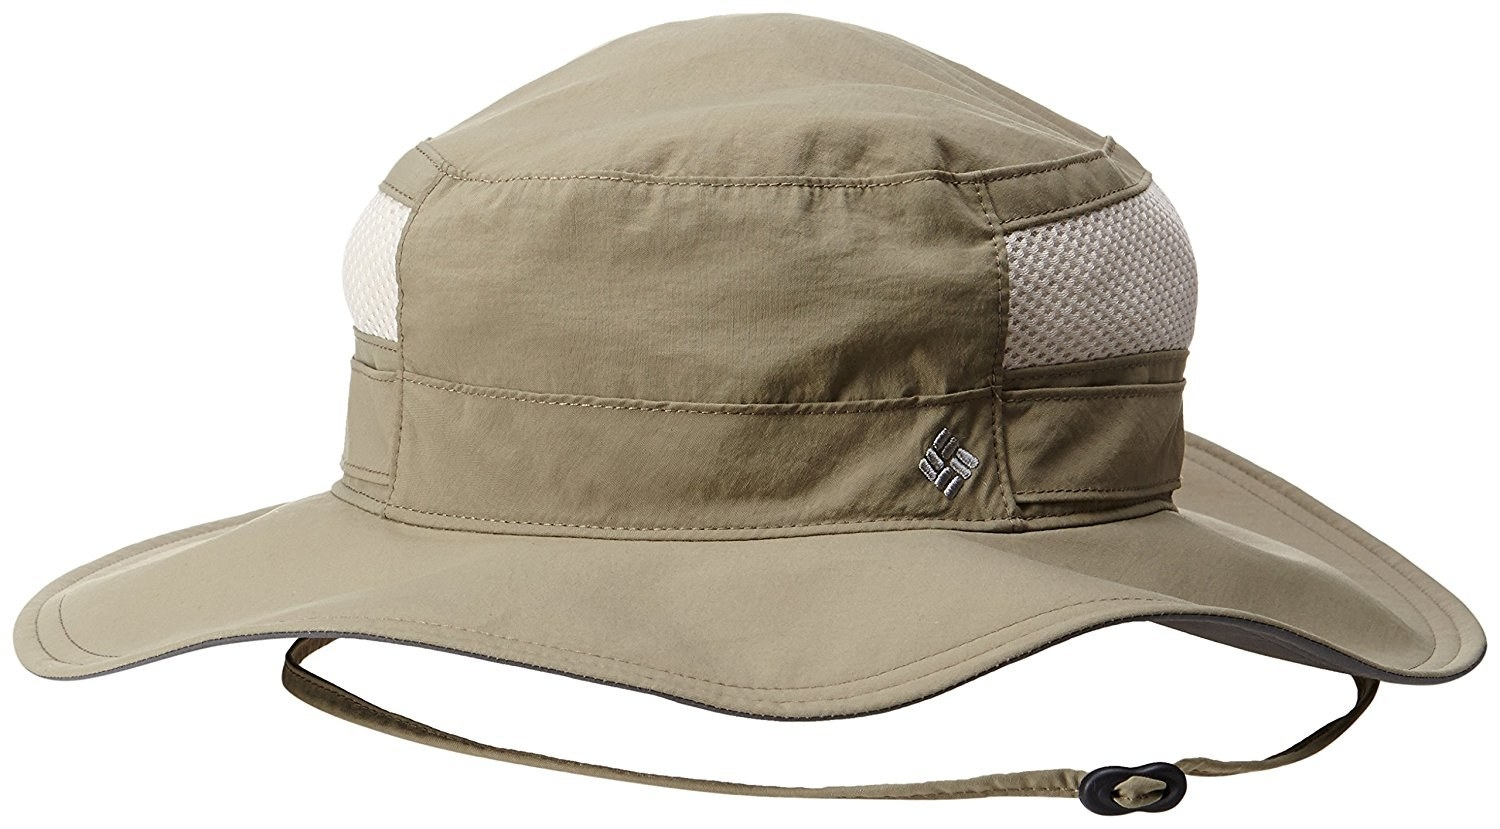 e57e7aef A moisture-wicking sun hat that, in addition to being great protection from  UV rays, is truly Peak Dad.